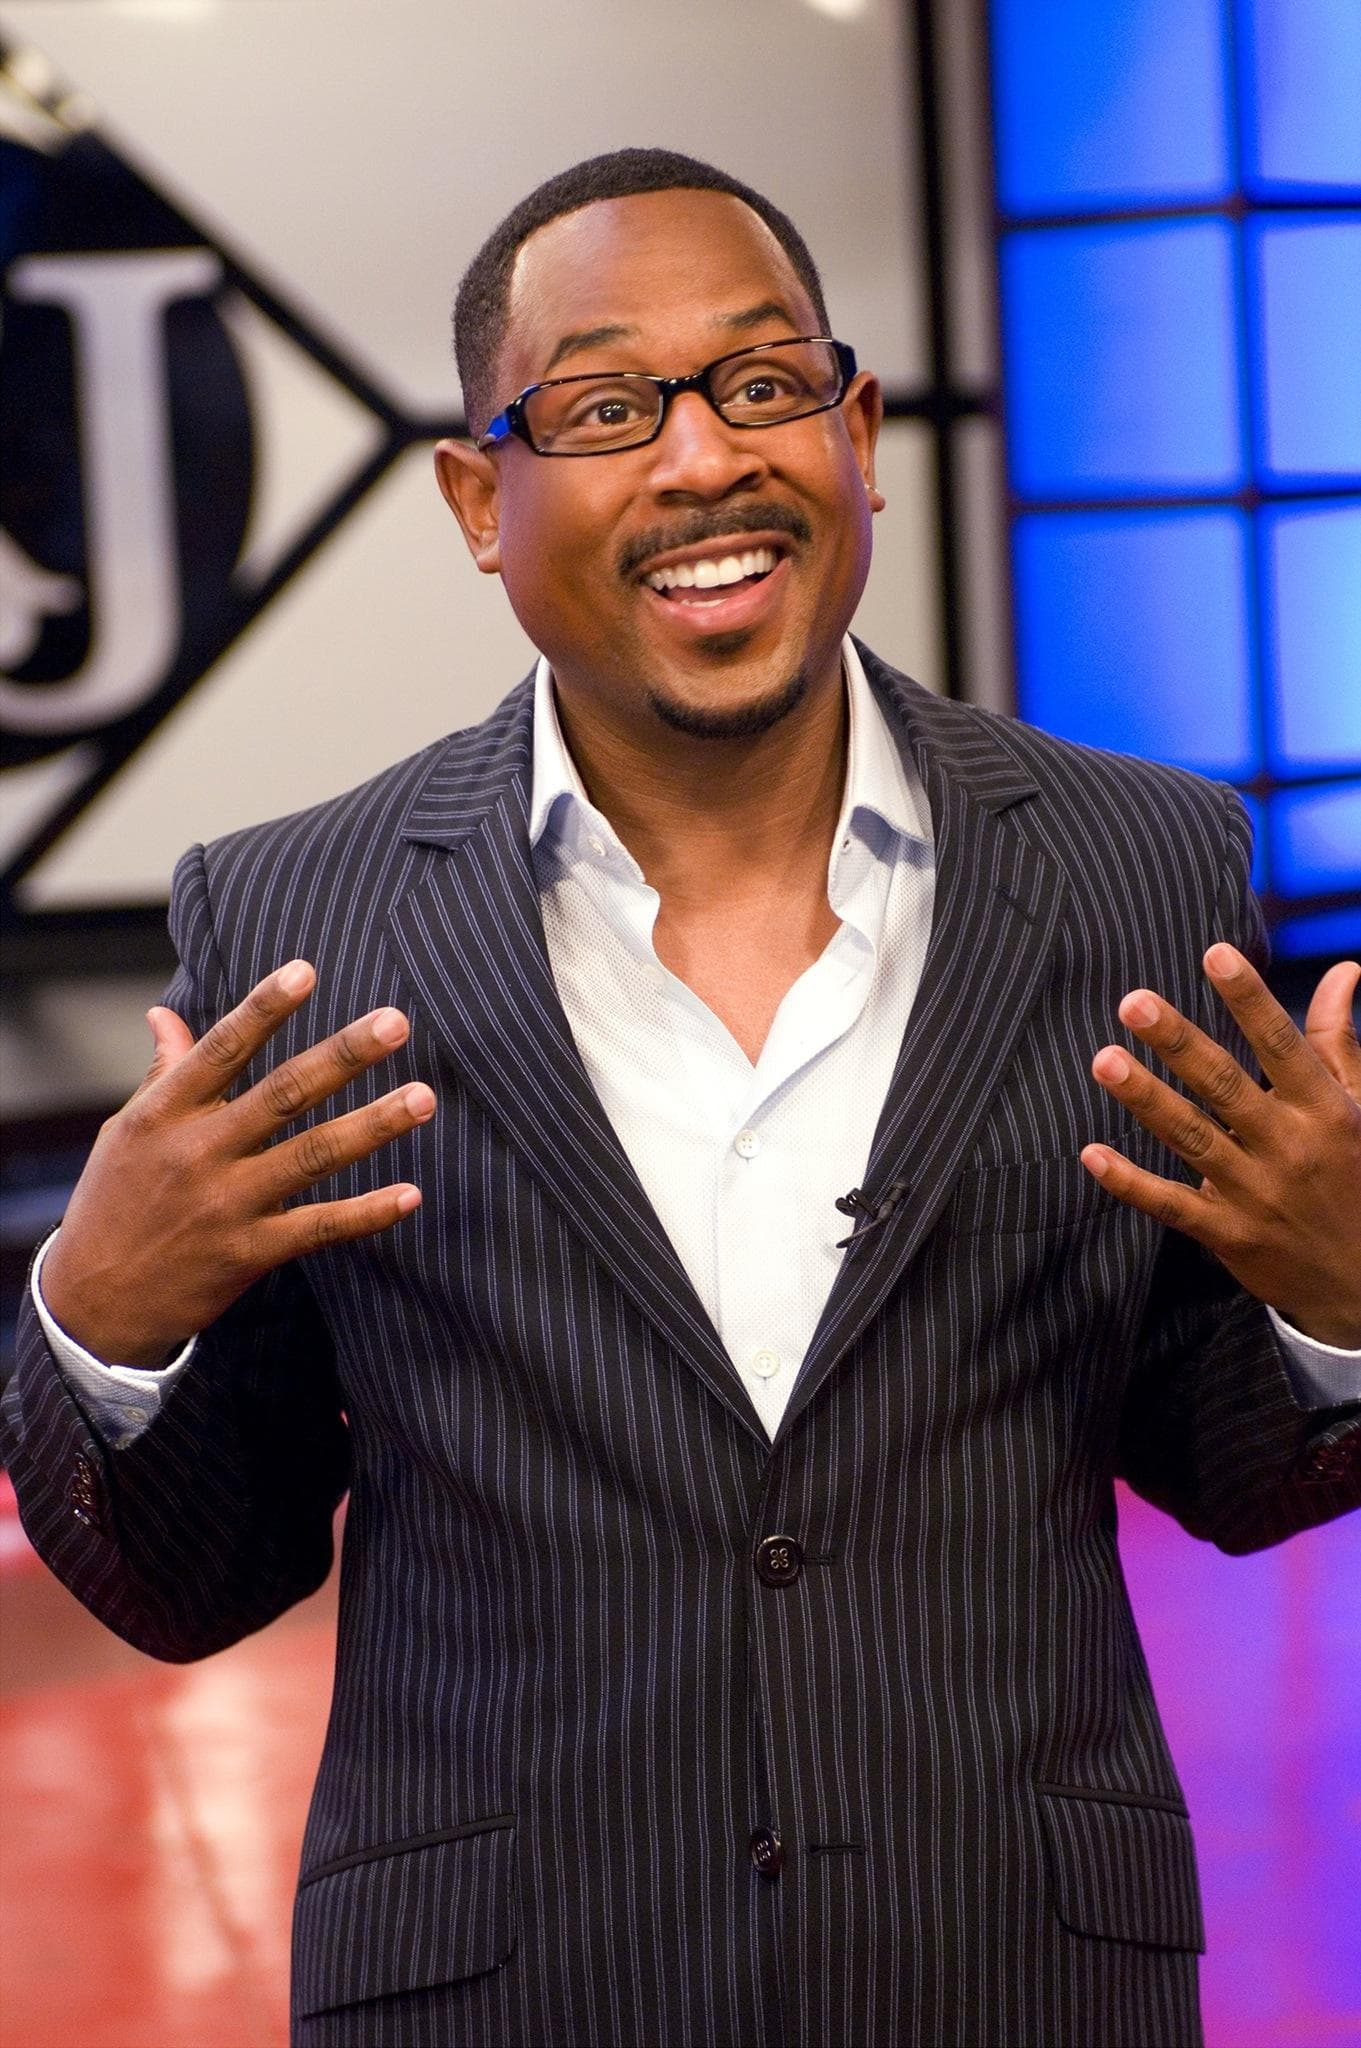 Martin Lawrence Wallpapers hd